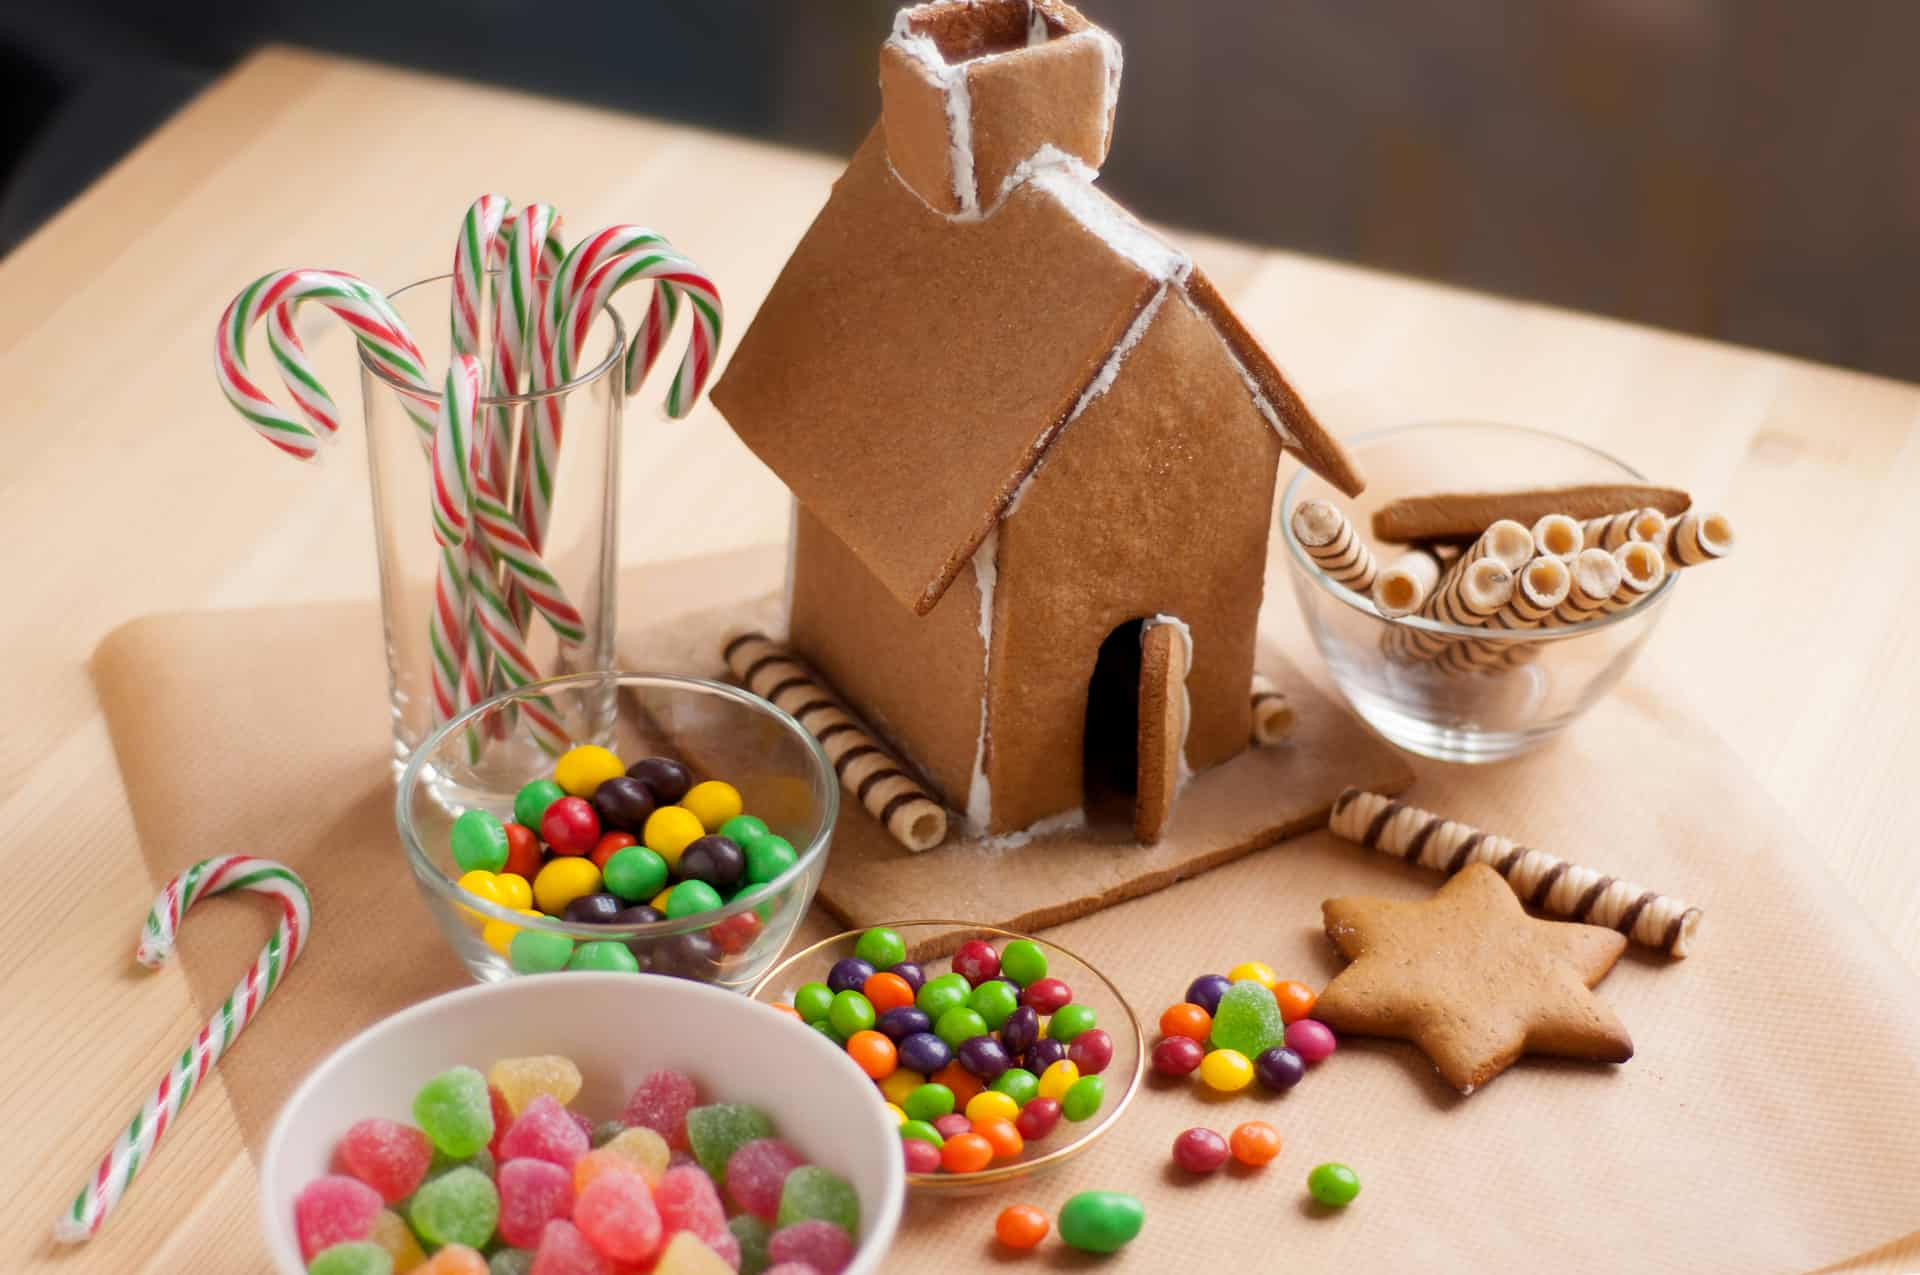 This Year You can Build a Gingerbread House, Make a Grinch Tree and Stuff an Animal During Christmas at Northgate Centre – and it's all Free!